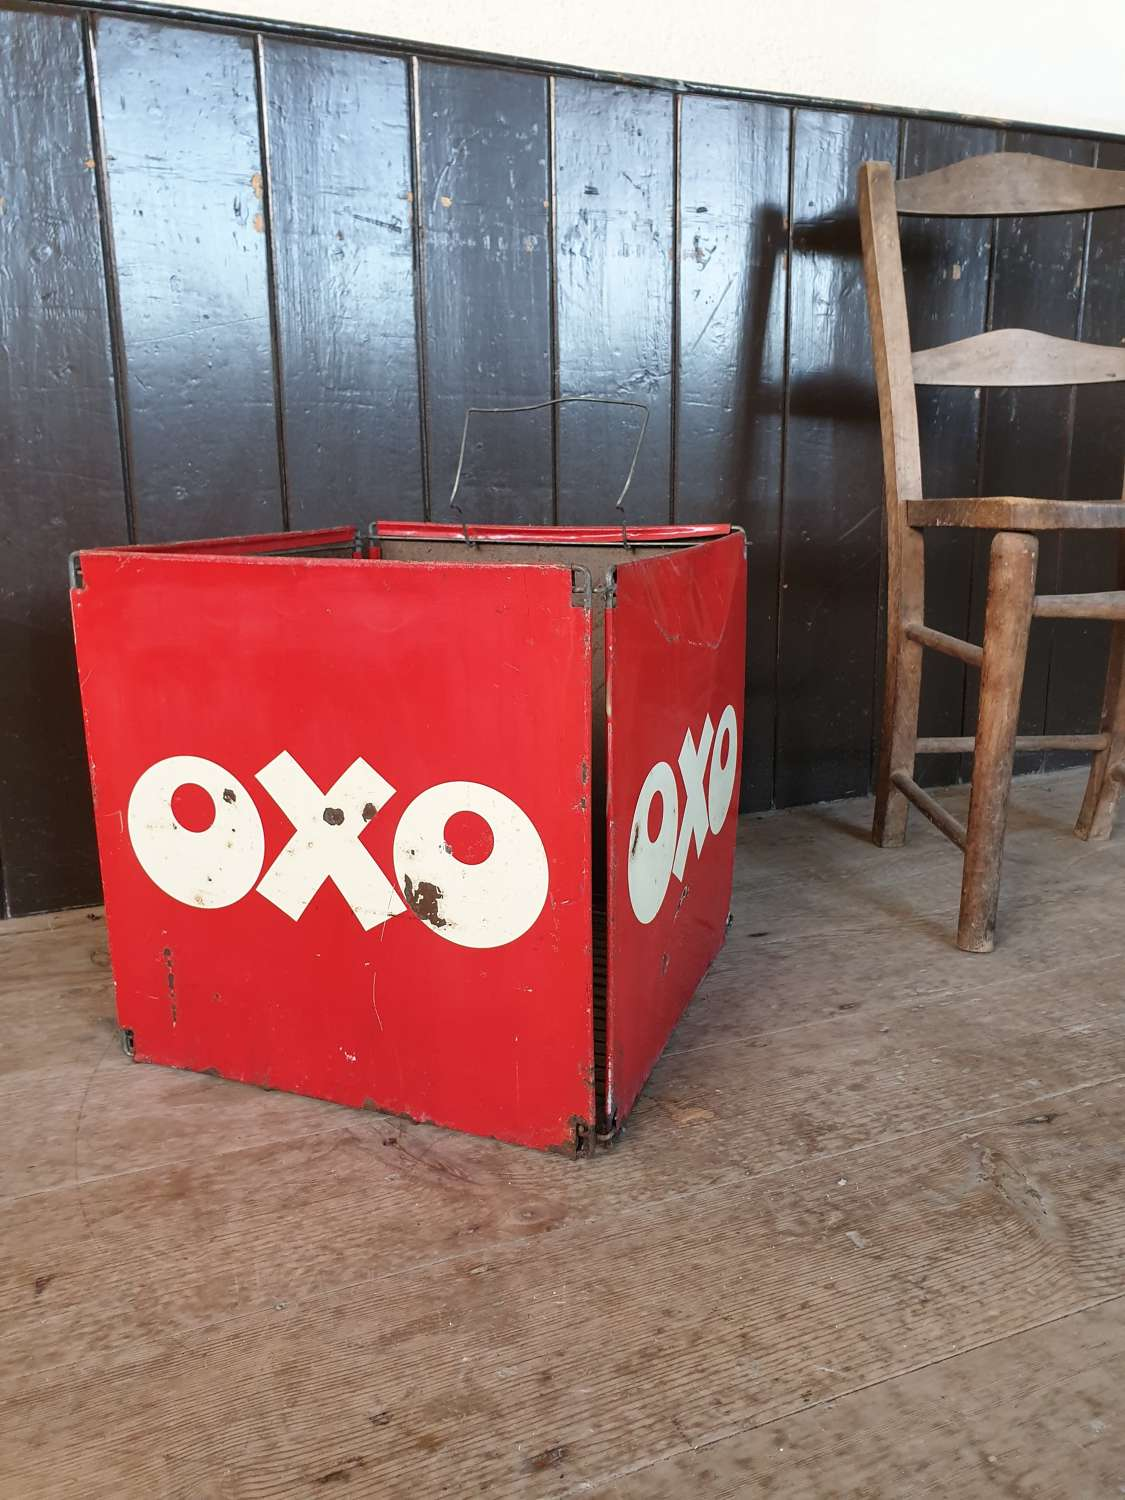 OXO Advertising Litter Bin